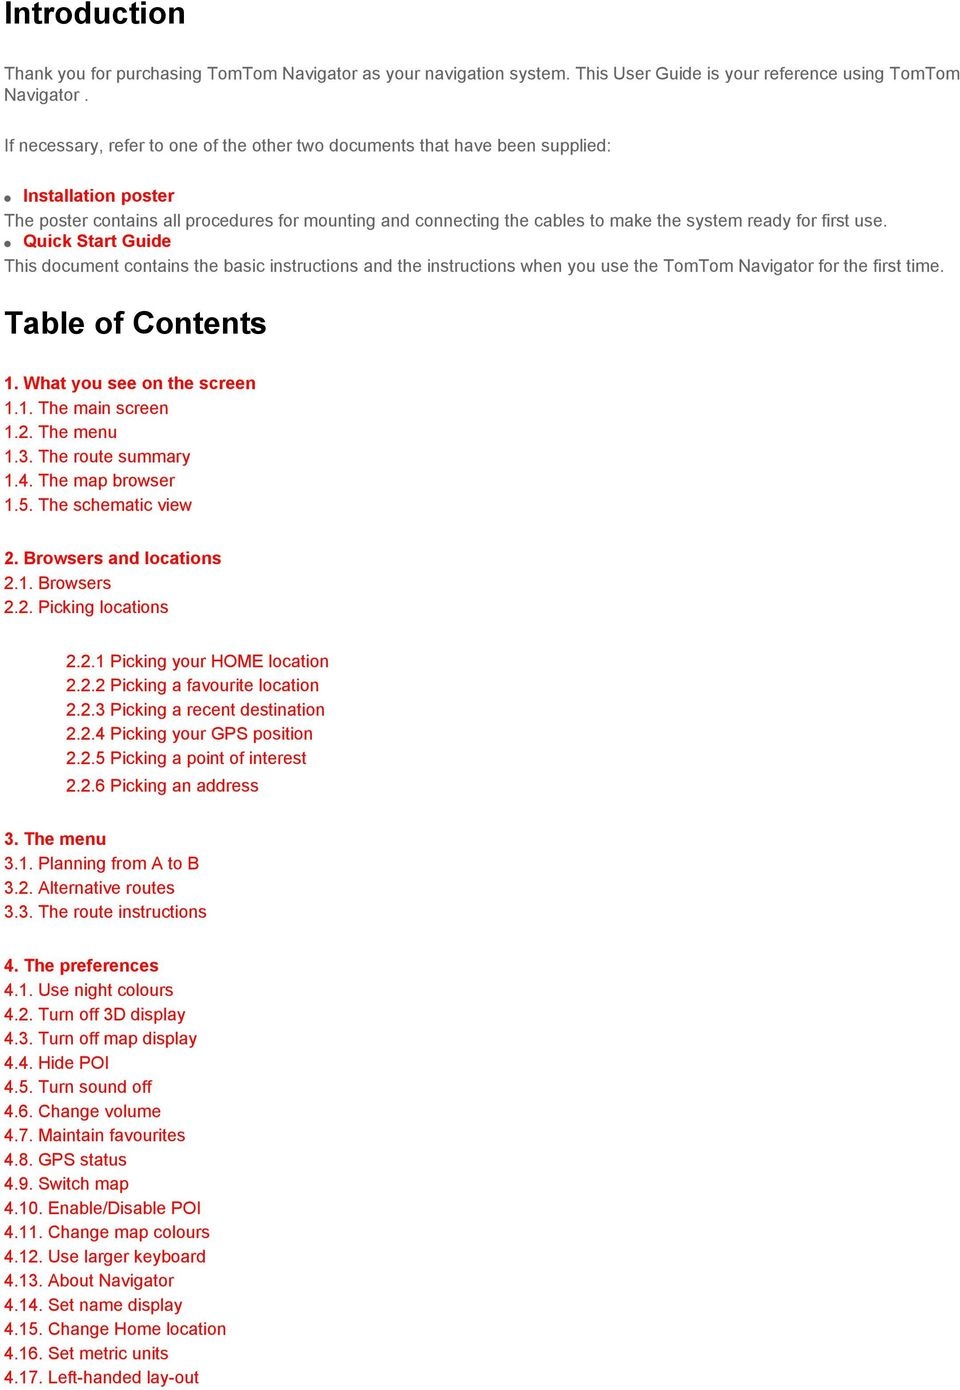 for first use. Quick Start Guide This document contains the basic instructions and the instructions when you use the TomTom Navigator for the first time. Table of Contents 1.